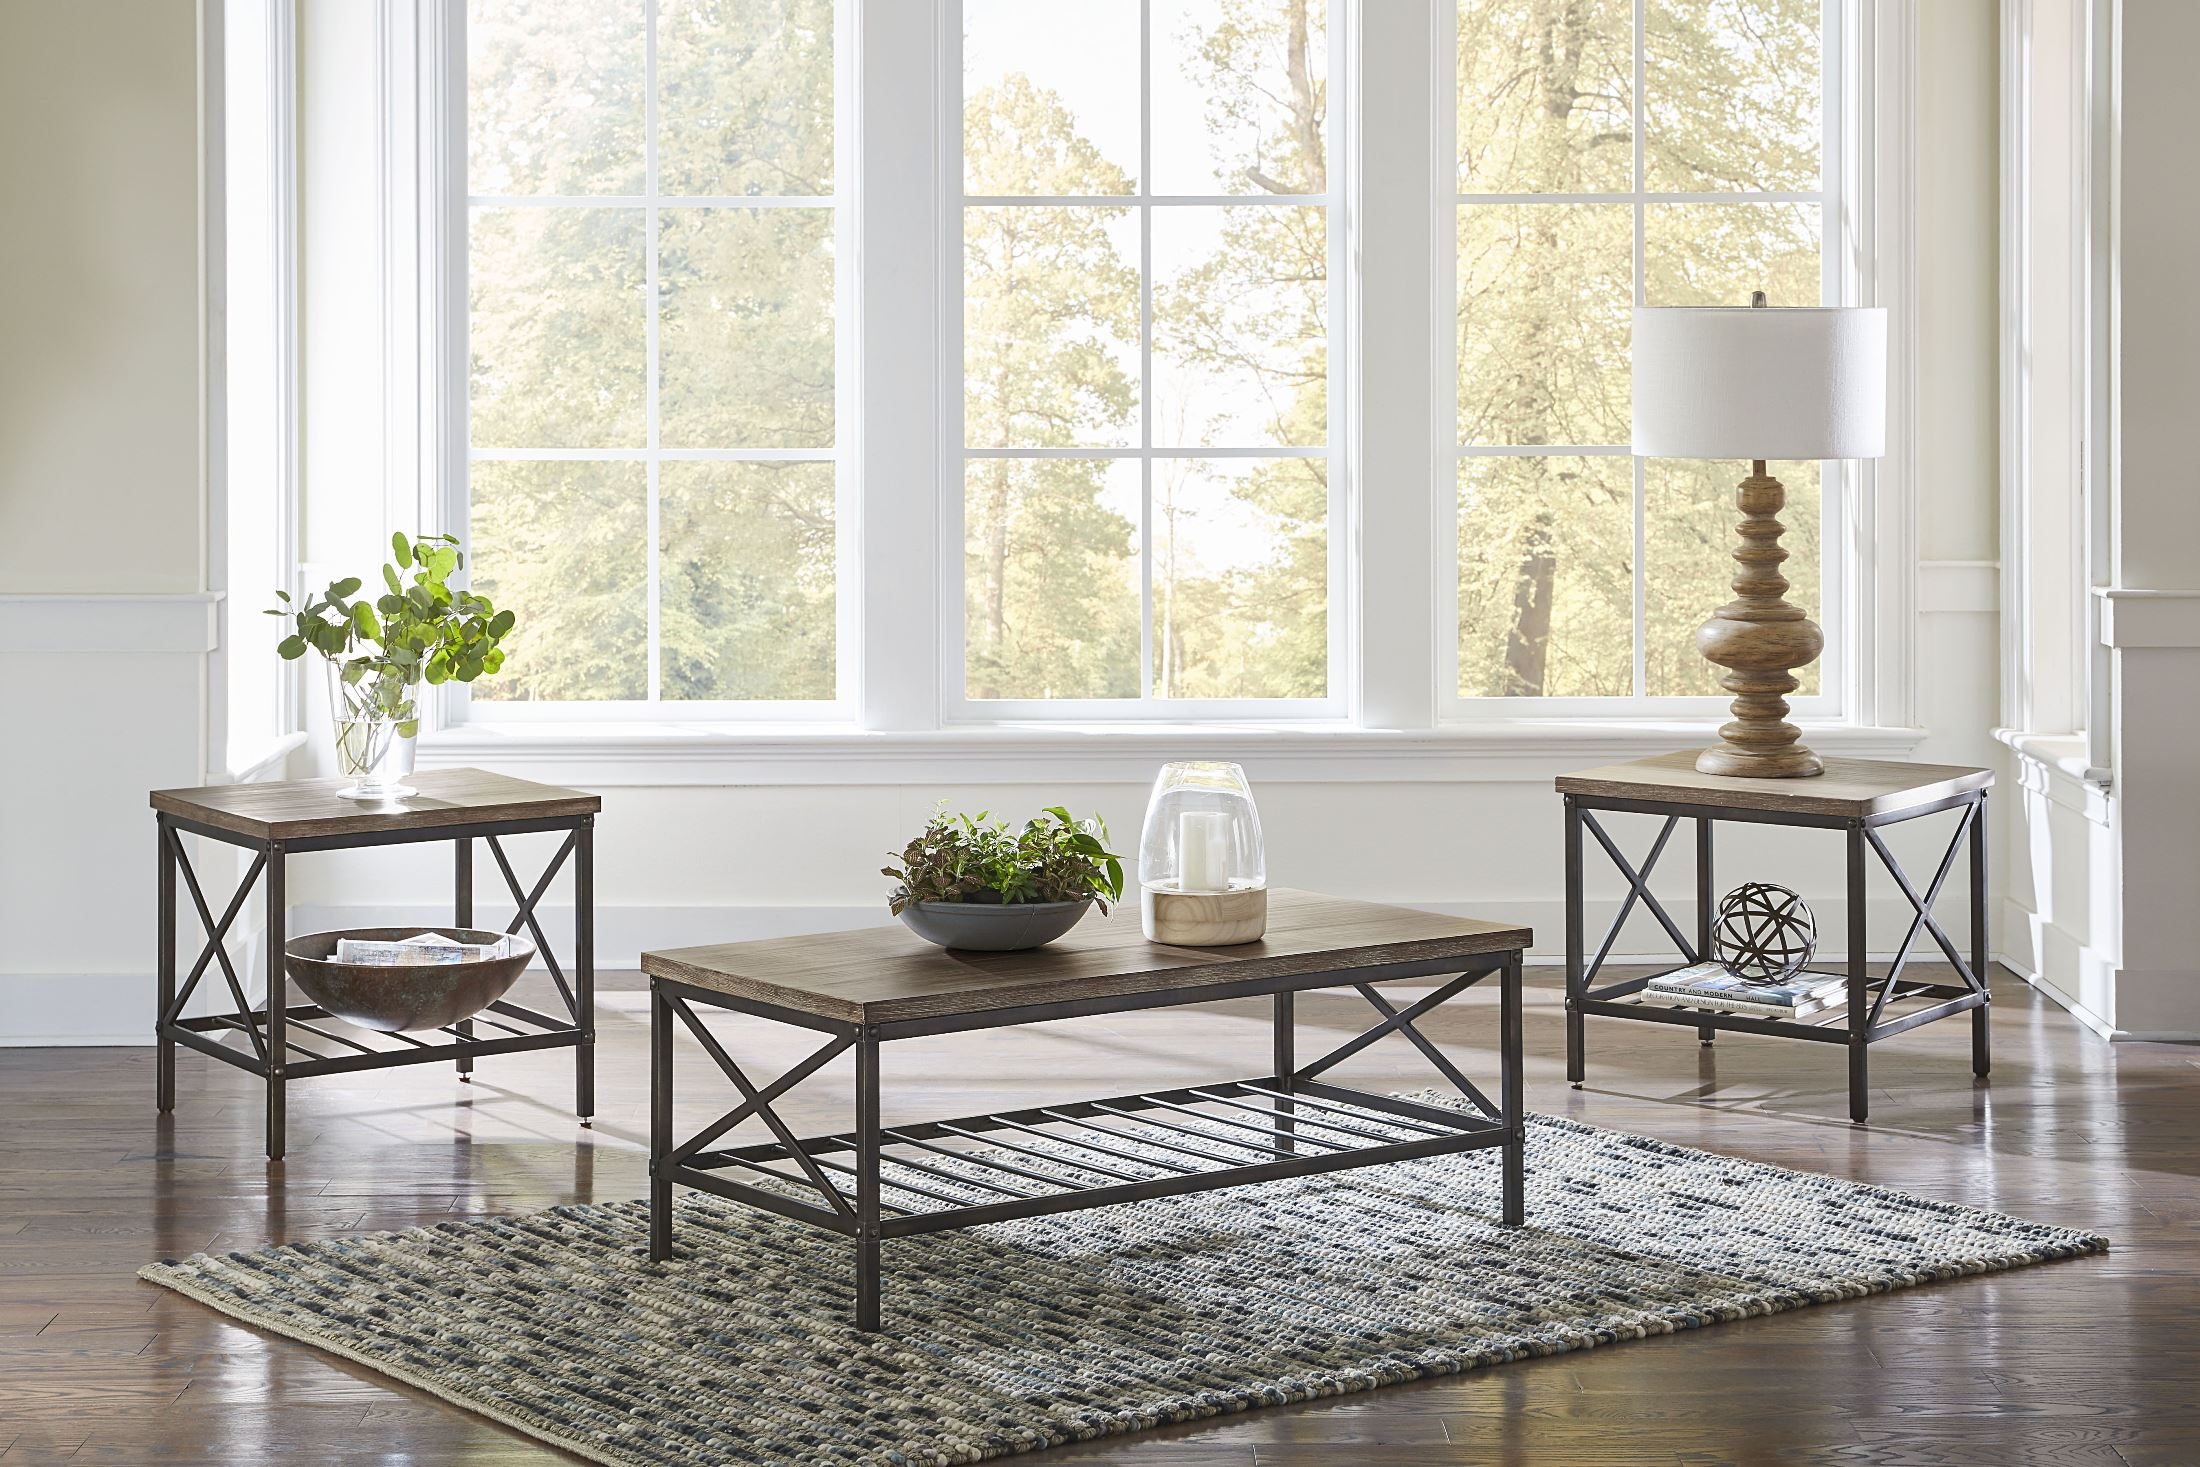 standard furniture brendon brown accent tables set roomscene living room table sets wooden coffee plans lamp shades plus green piece patio dining clearance white round linens